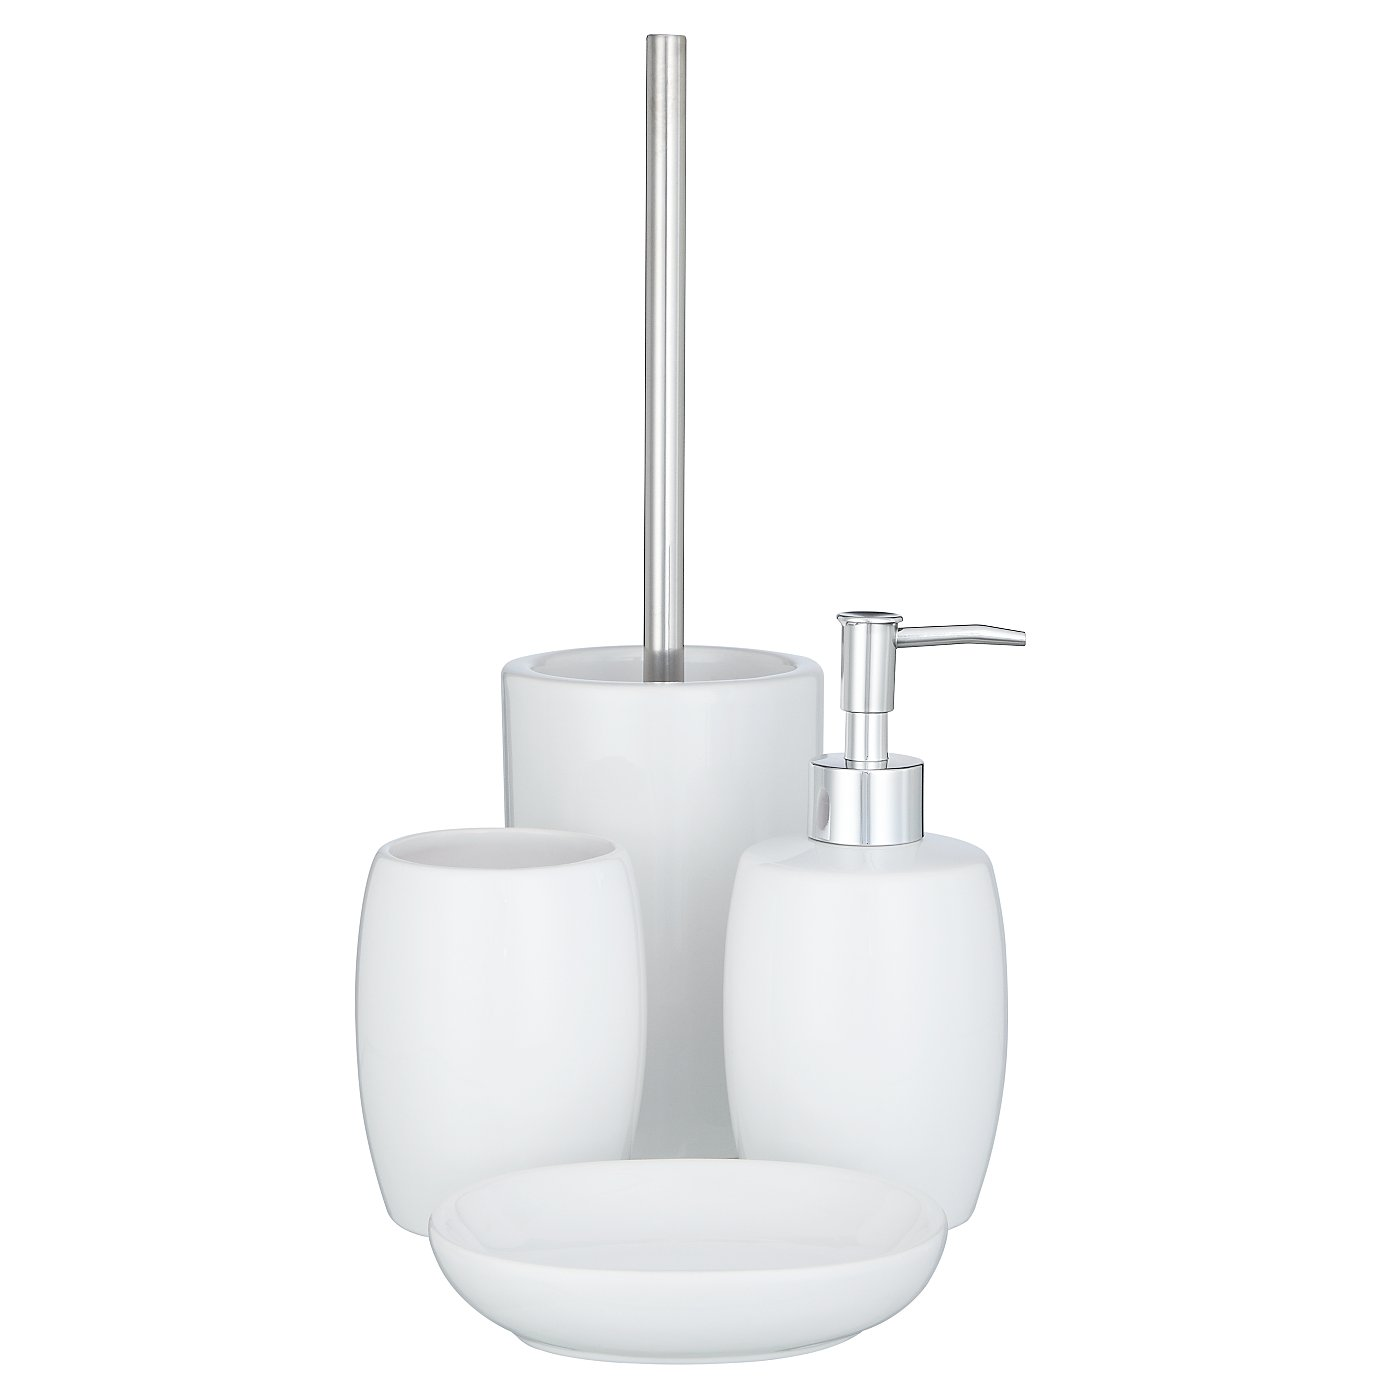 white ceramic bath accessories range bathroom interior design - White Bathroom Accessories Ceramic